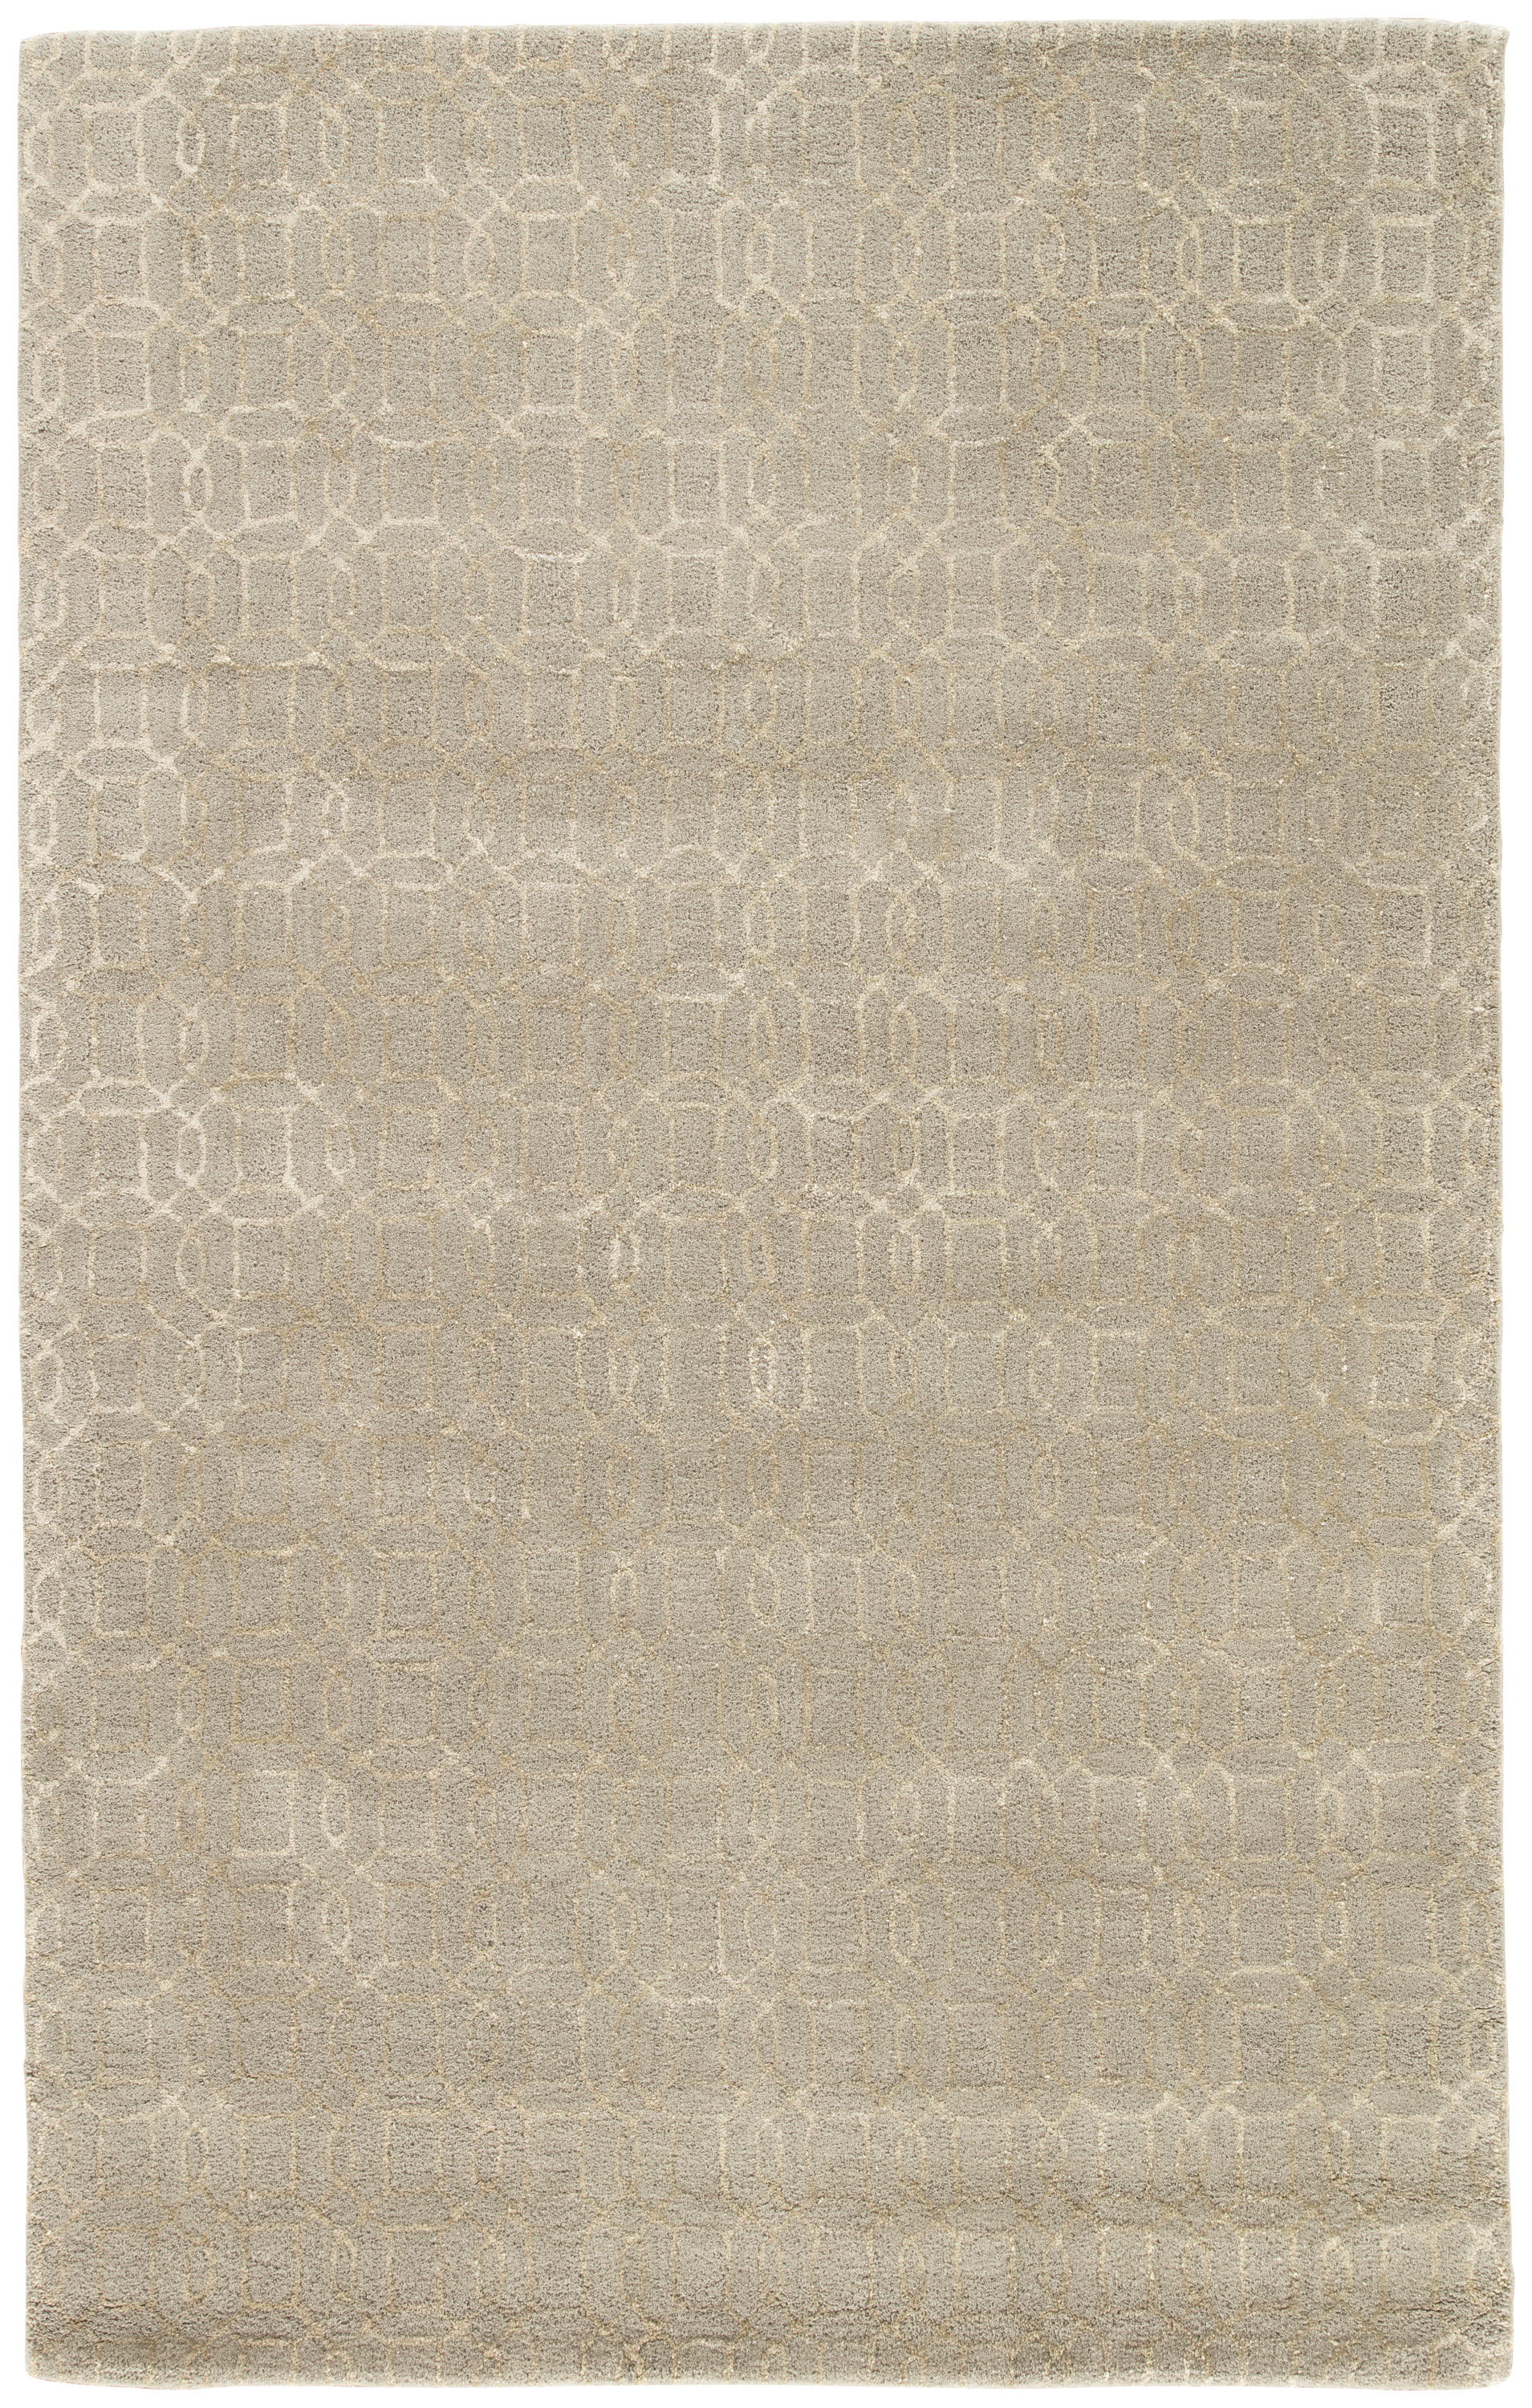 Jaipur Baroque BQ03 Neutral Gray